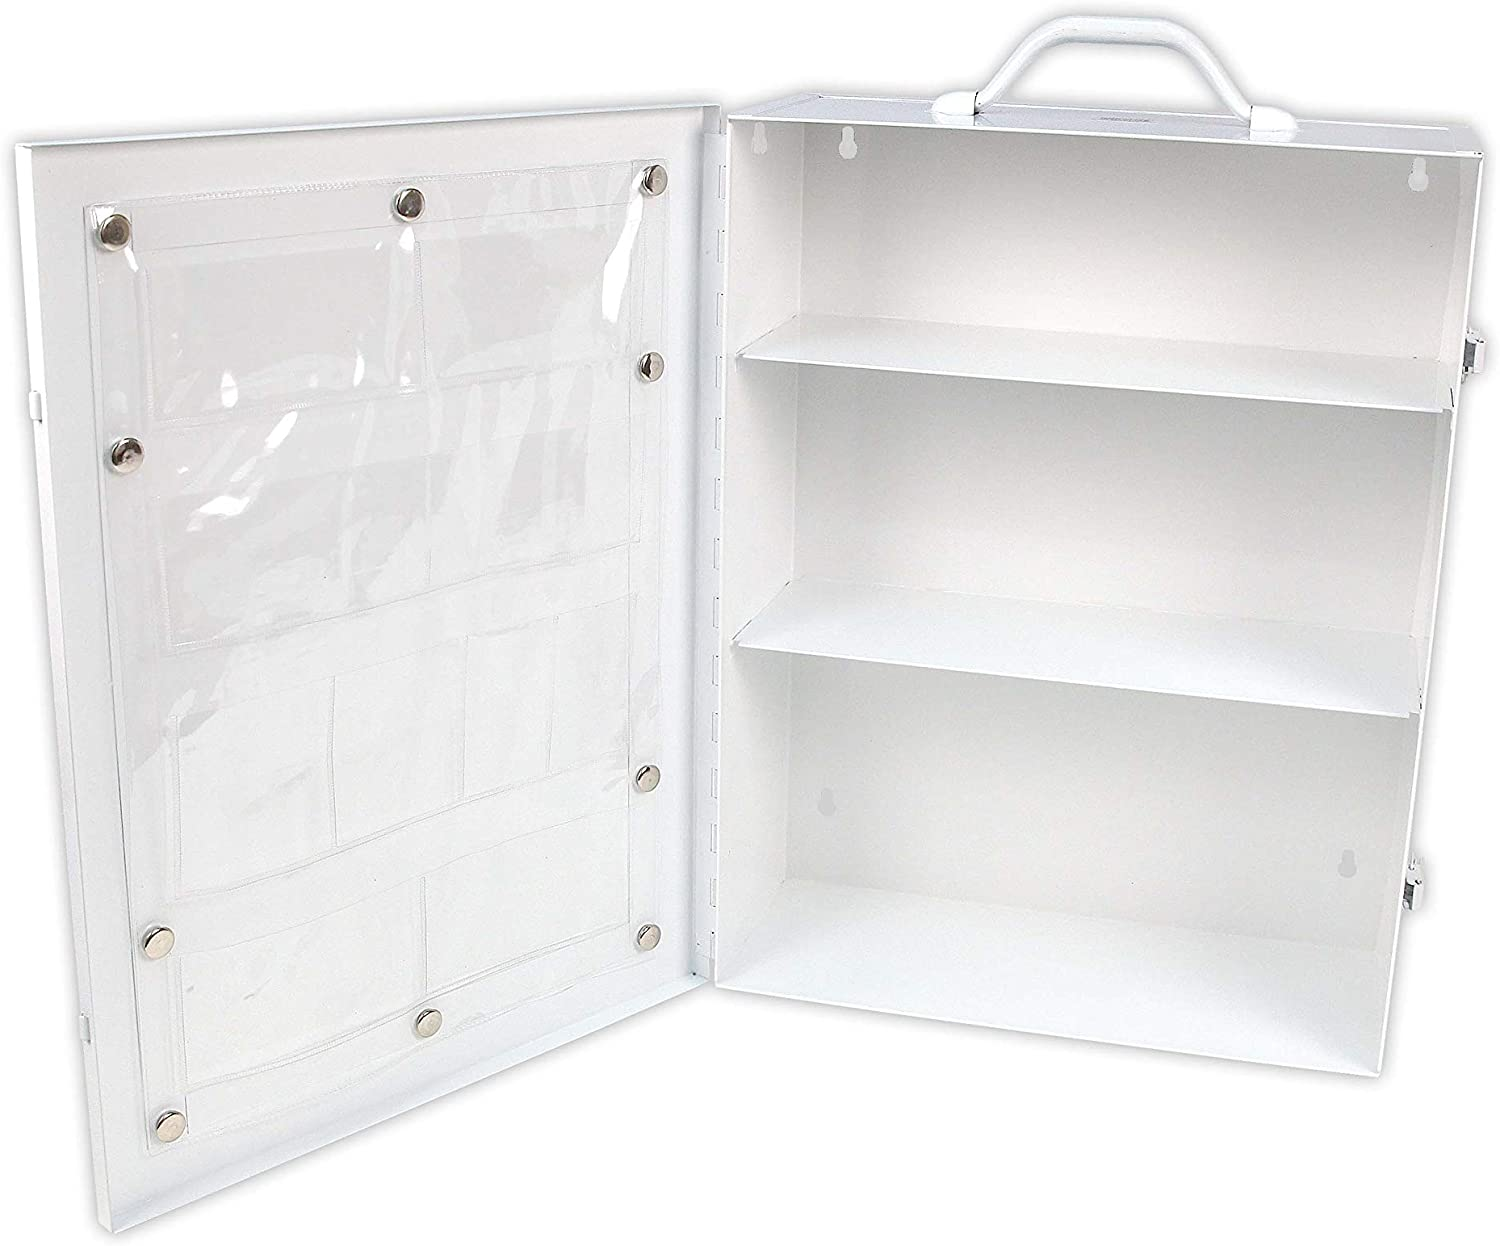 Rapid Care famous First Aid 62003 famous Pro Shelf without Cabinet 3